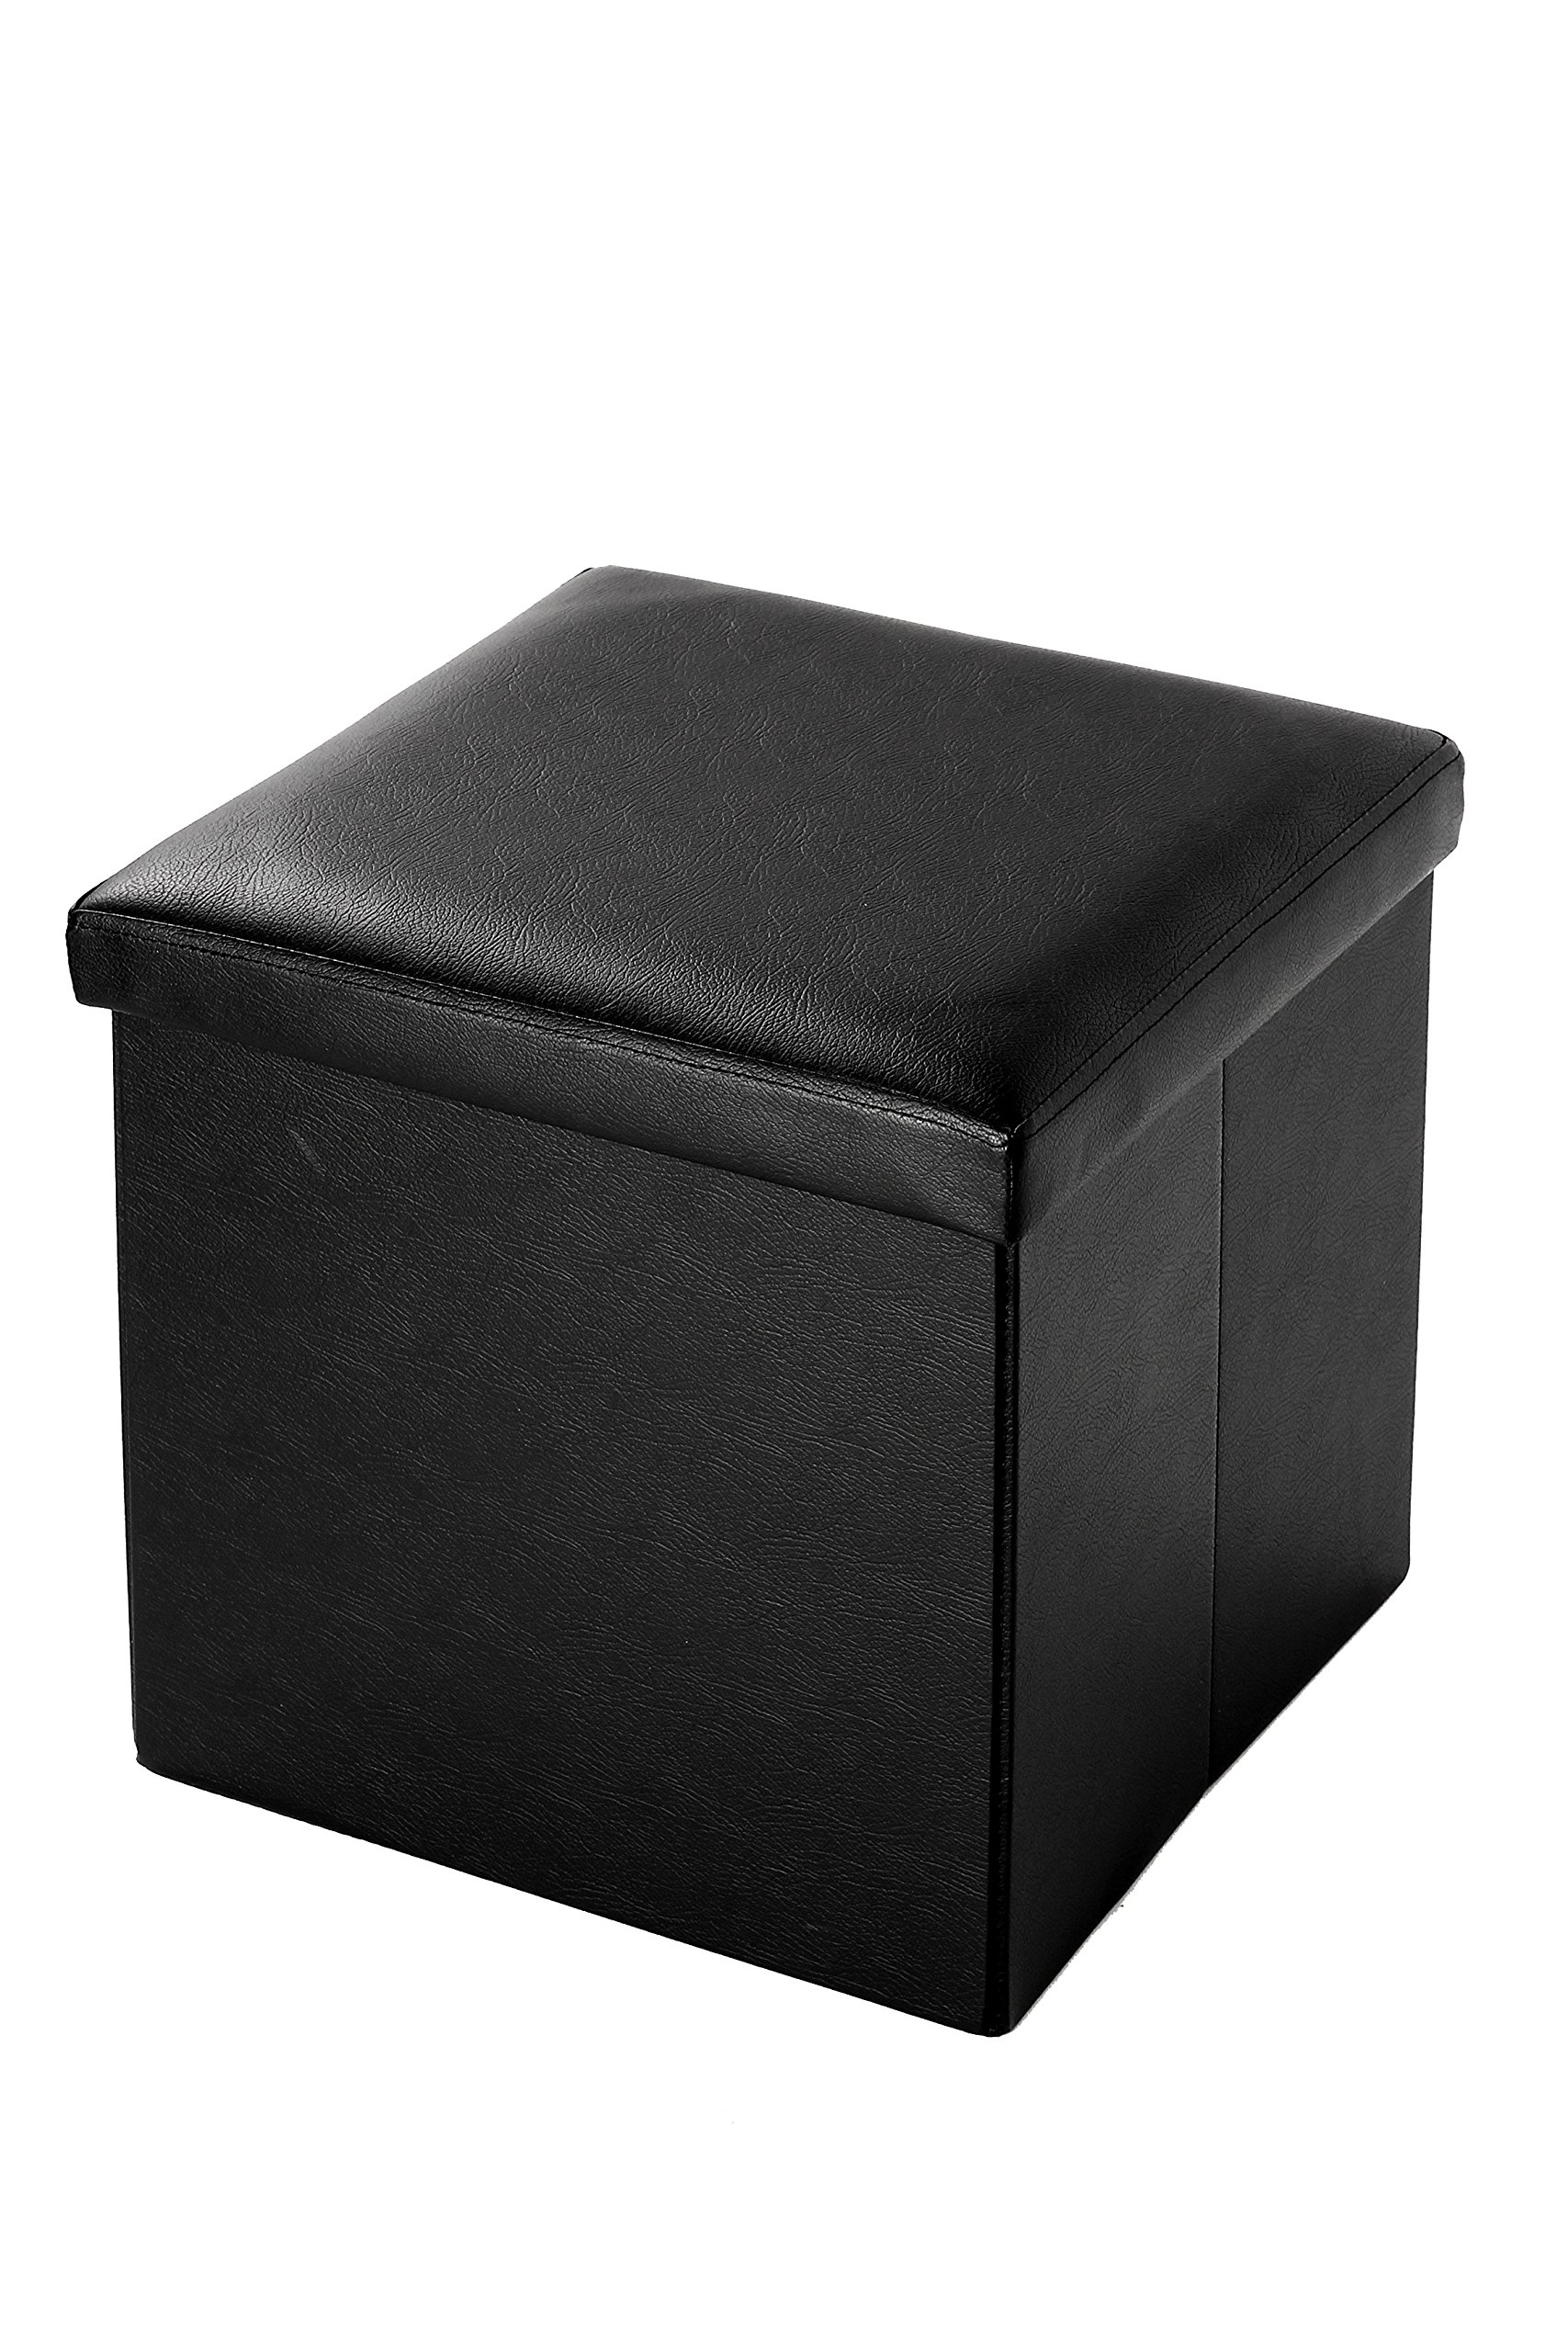 Juvale Black Faux Leather Storage Ottoman - Foot Rest, Folds For Easy Storage - 15 Inches